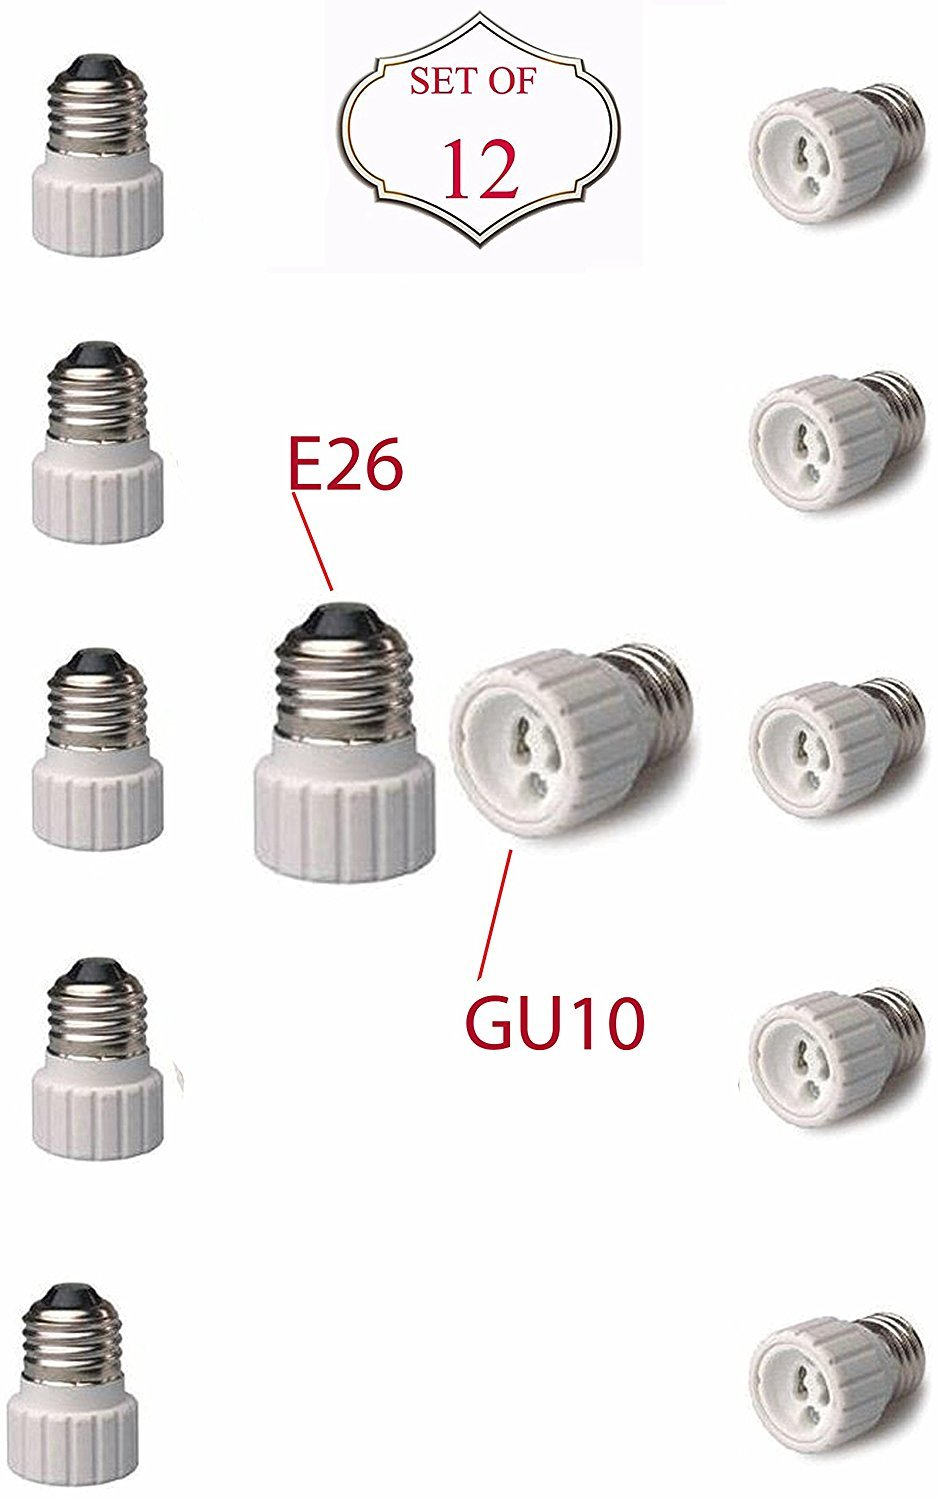 SleekLighting E26 to GU10 Adapters - Converts Your Standard Screw-in Bulb (E26) to Pin Base Fixture (GU10) Maximum Watts and Voltage Capacity-Set of 12 18012